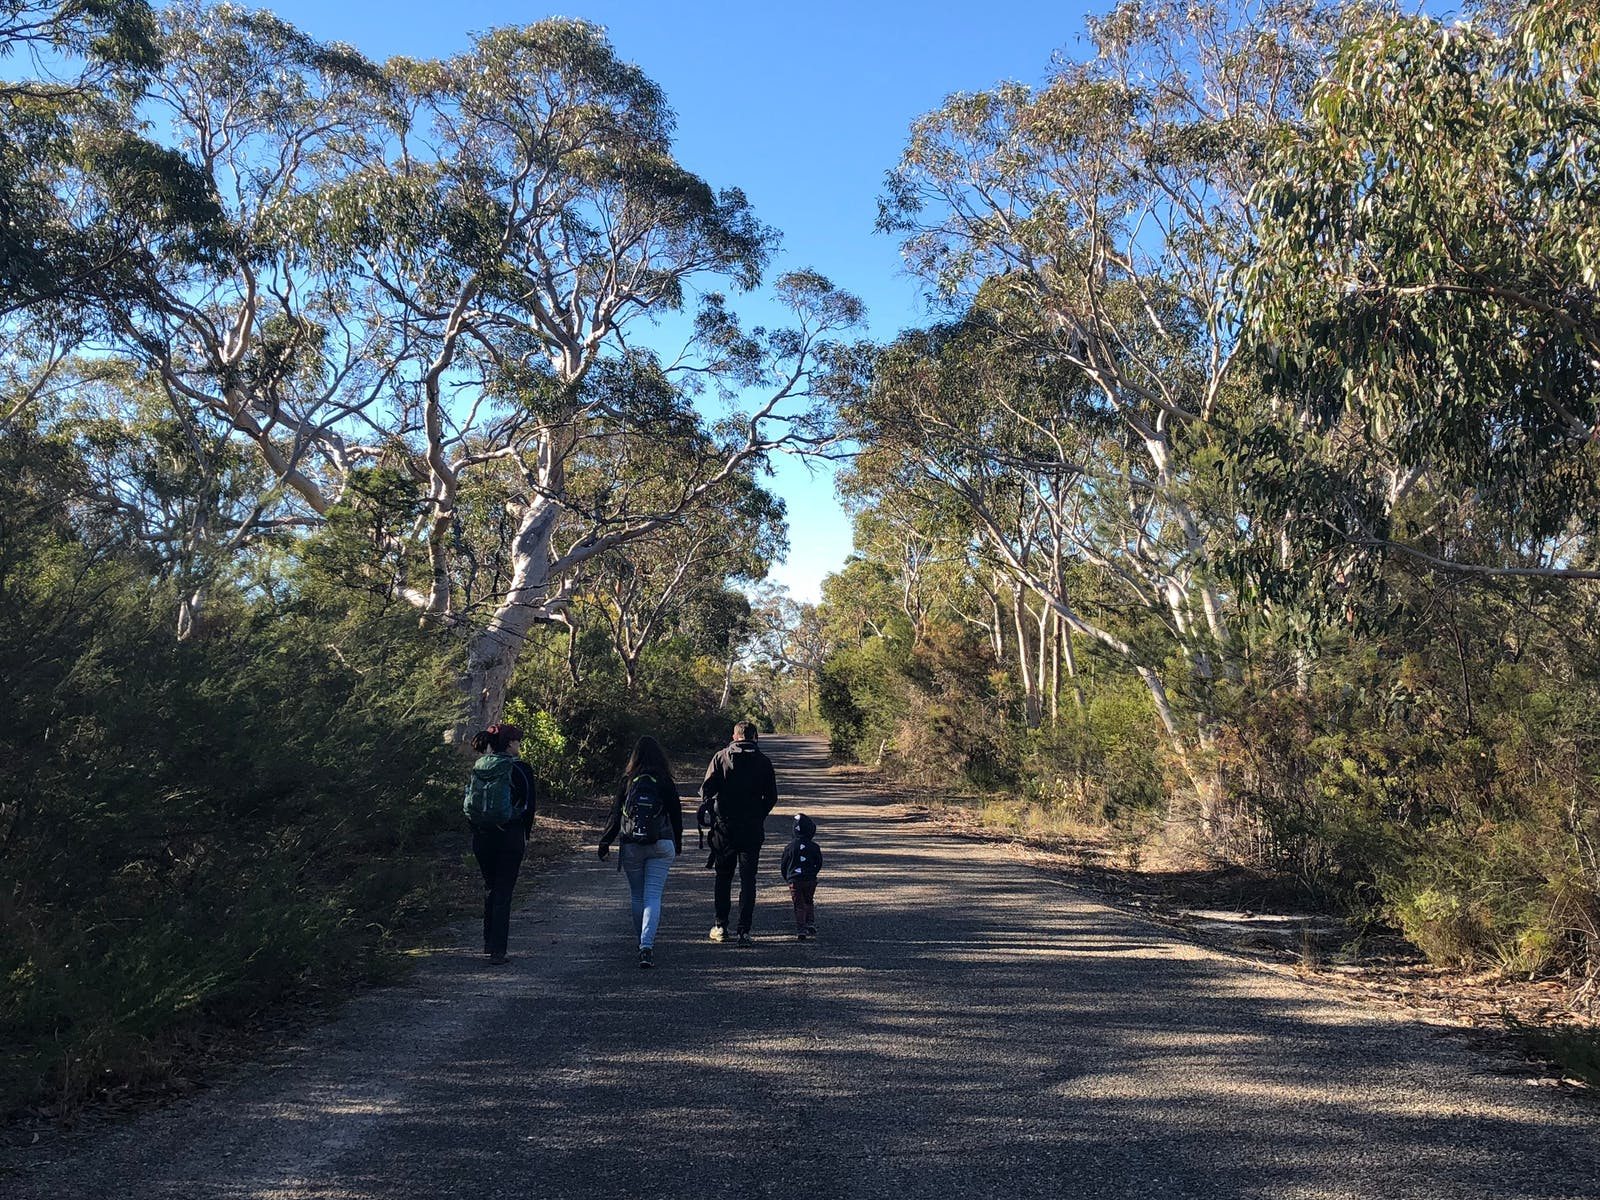 Image for Guided Indigenous Walks in Dharawal National Park - O'Hare's Lookout Trail